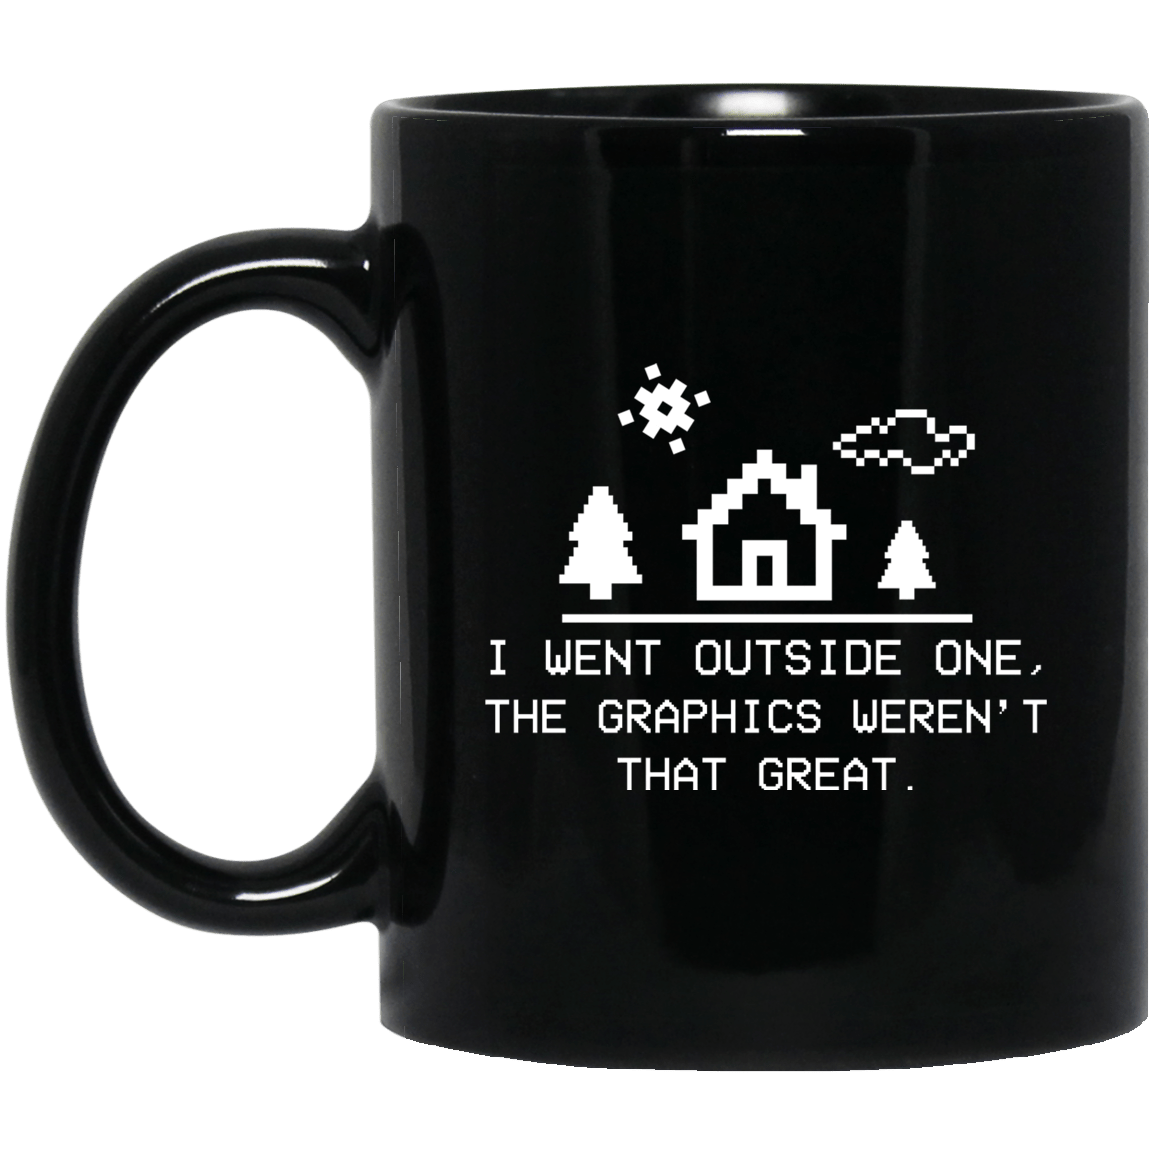 I Went Outside One The Graphics Weren't That Great Mug 1065-10181-91587451-49307 - Tee Ript